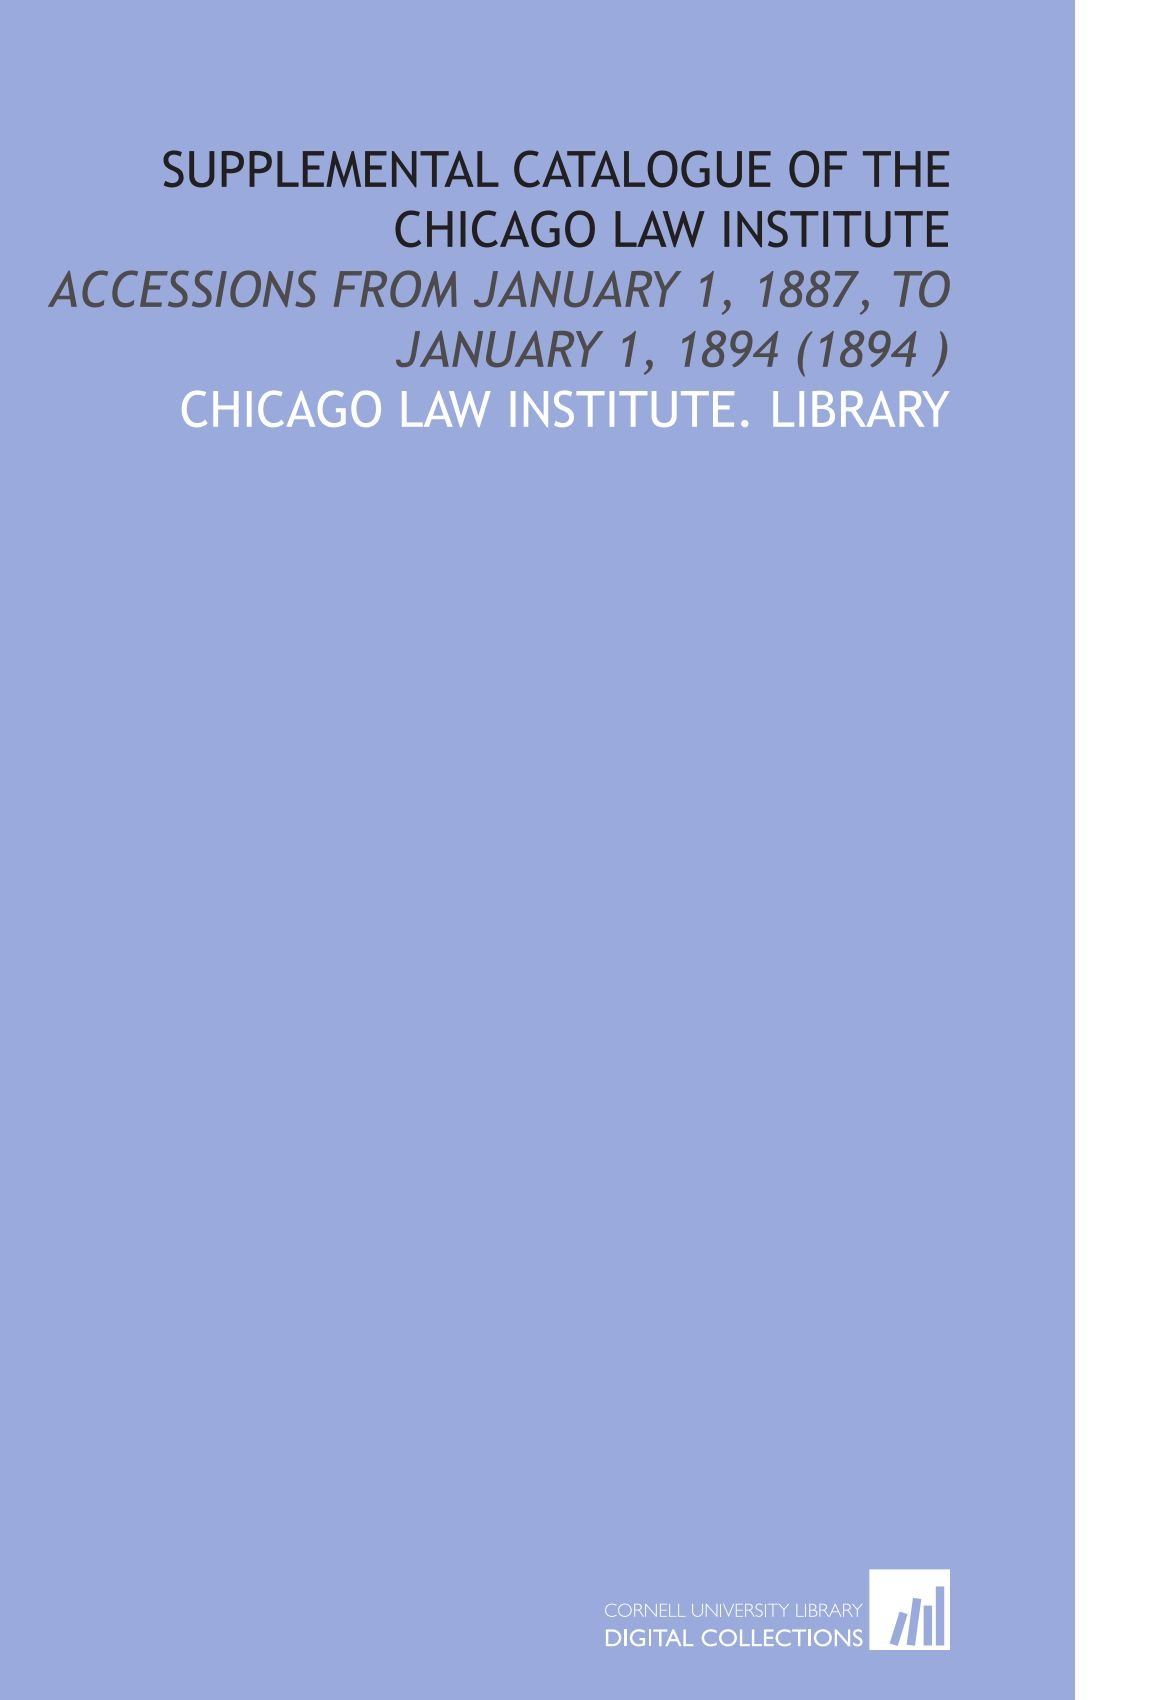 Download Supplemental Catalogue of the Chicago Law Institute: Accessions From January 1, 1887, to January 1, 1894 (1894 ) PDF